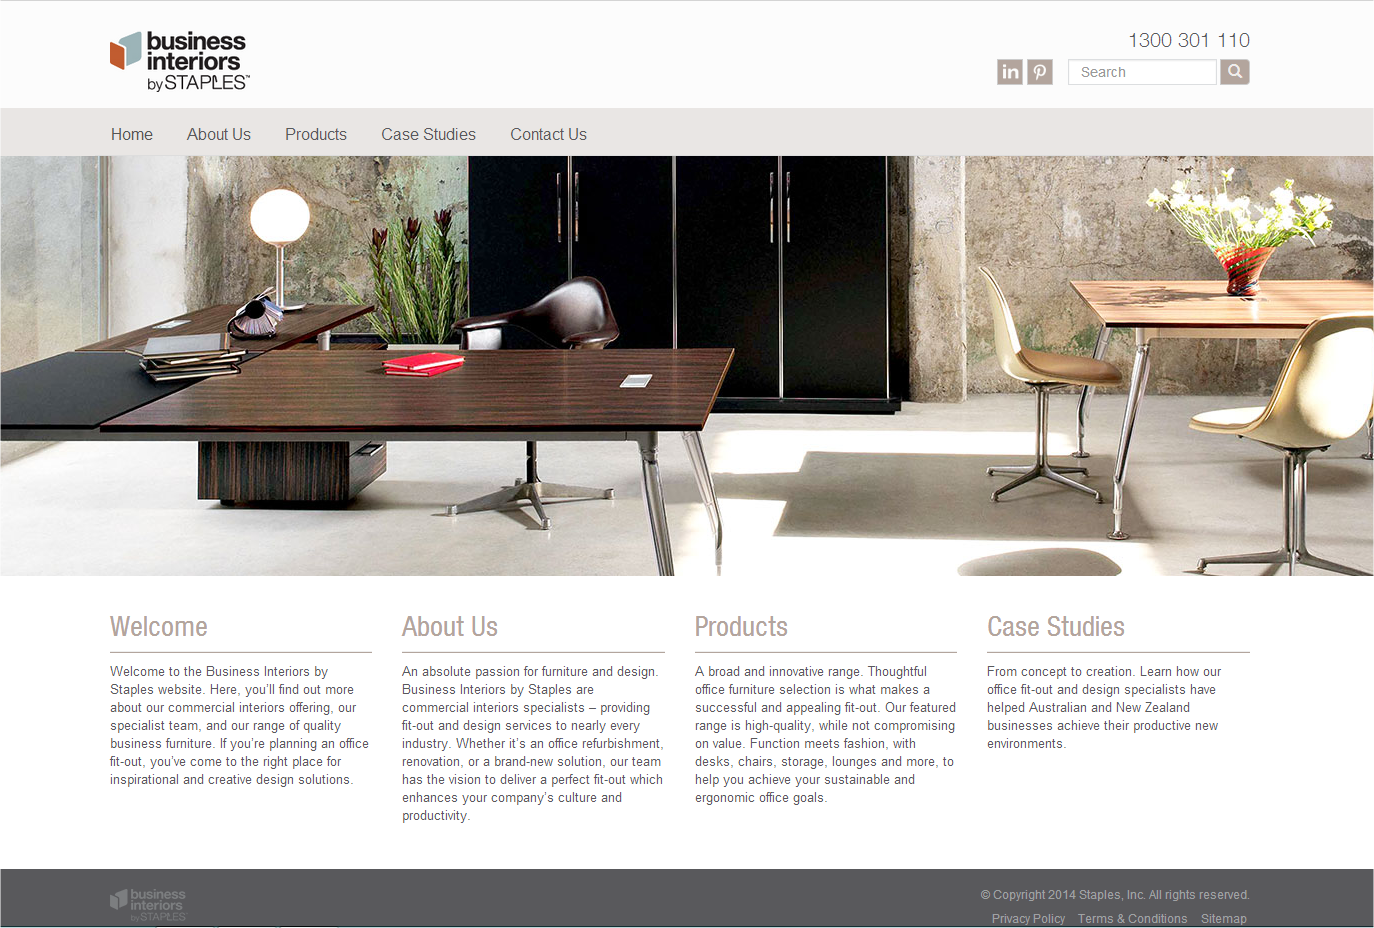 Business Interiors by Staples website